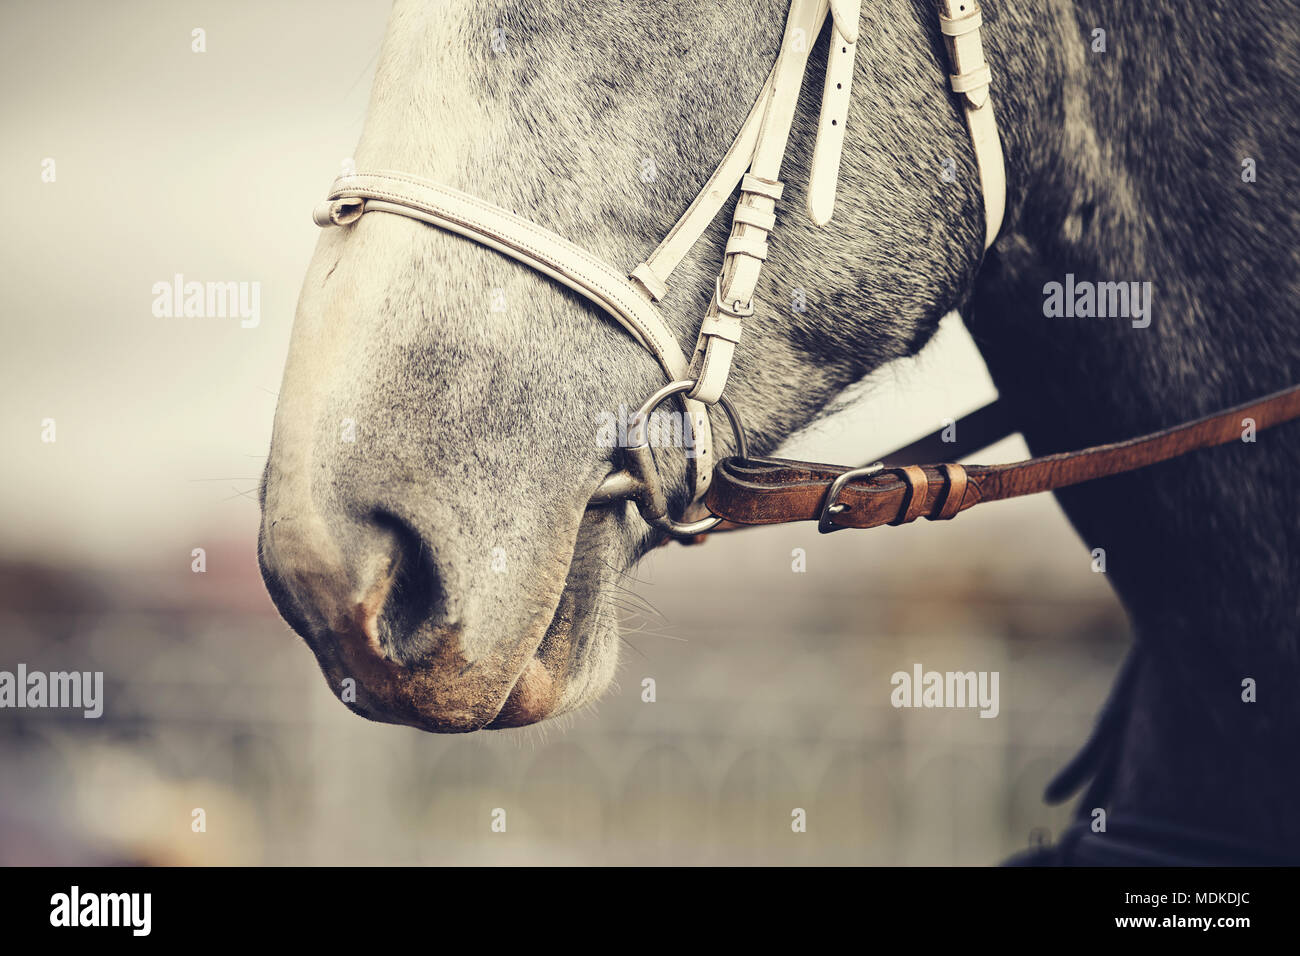 Muzzle of a gray horse in a bridle. - Stock Image